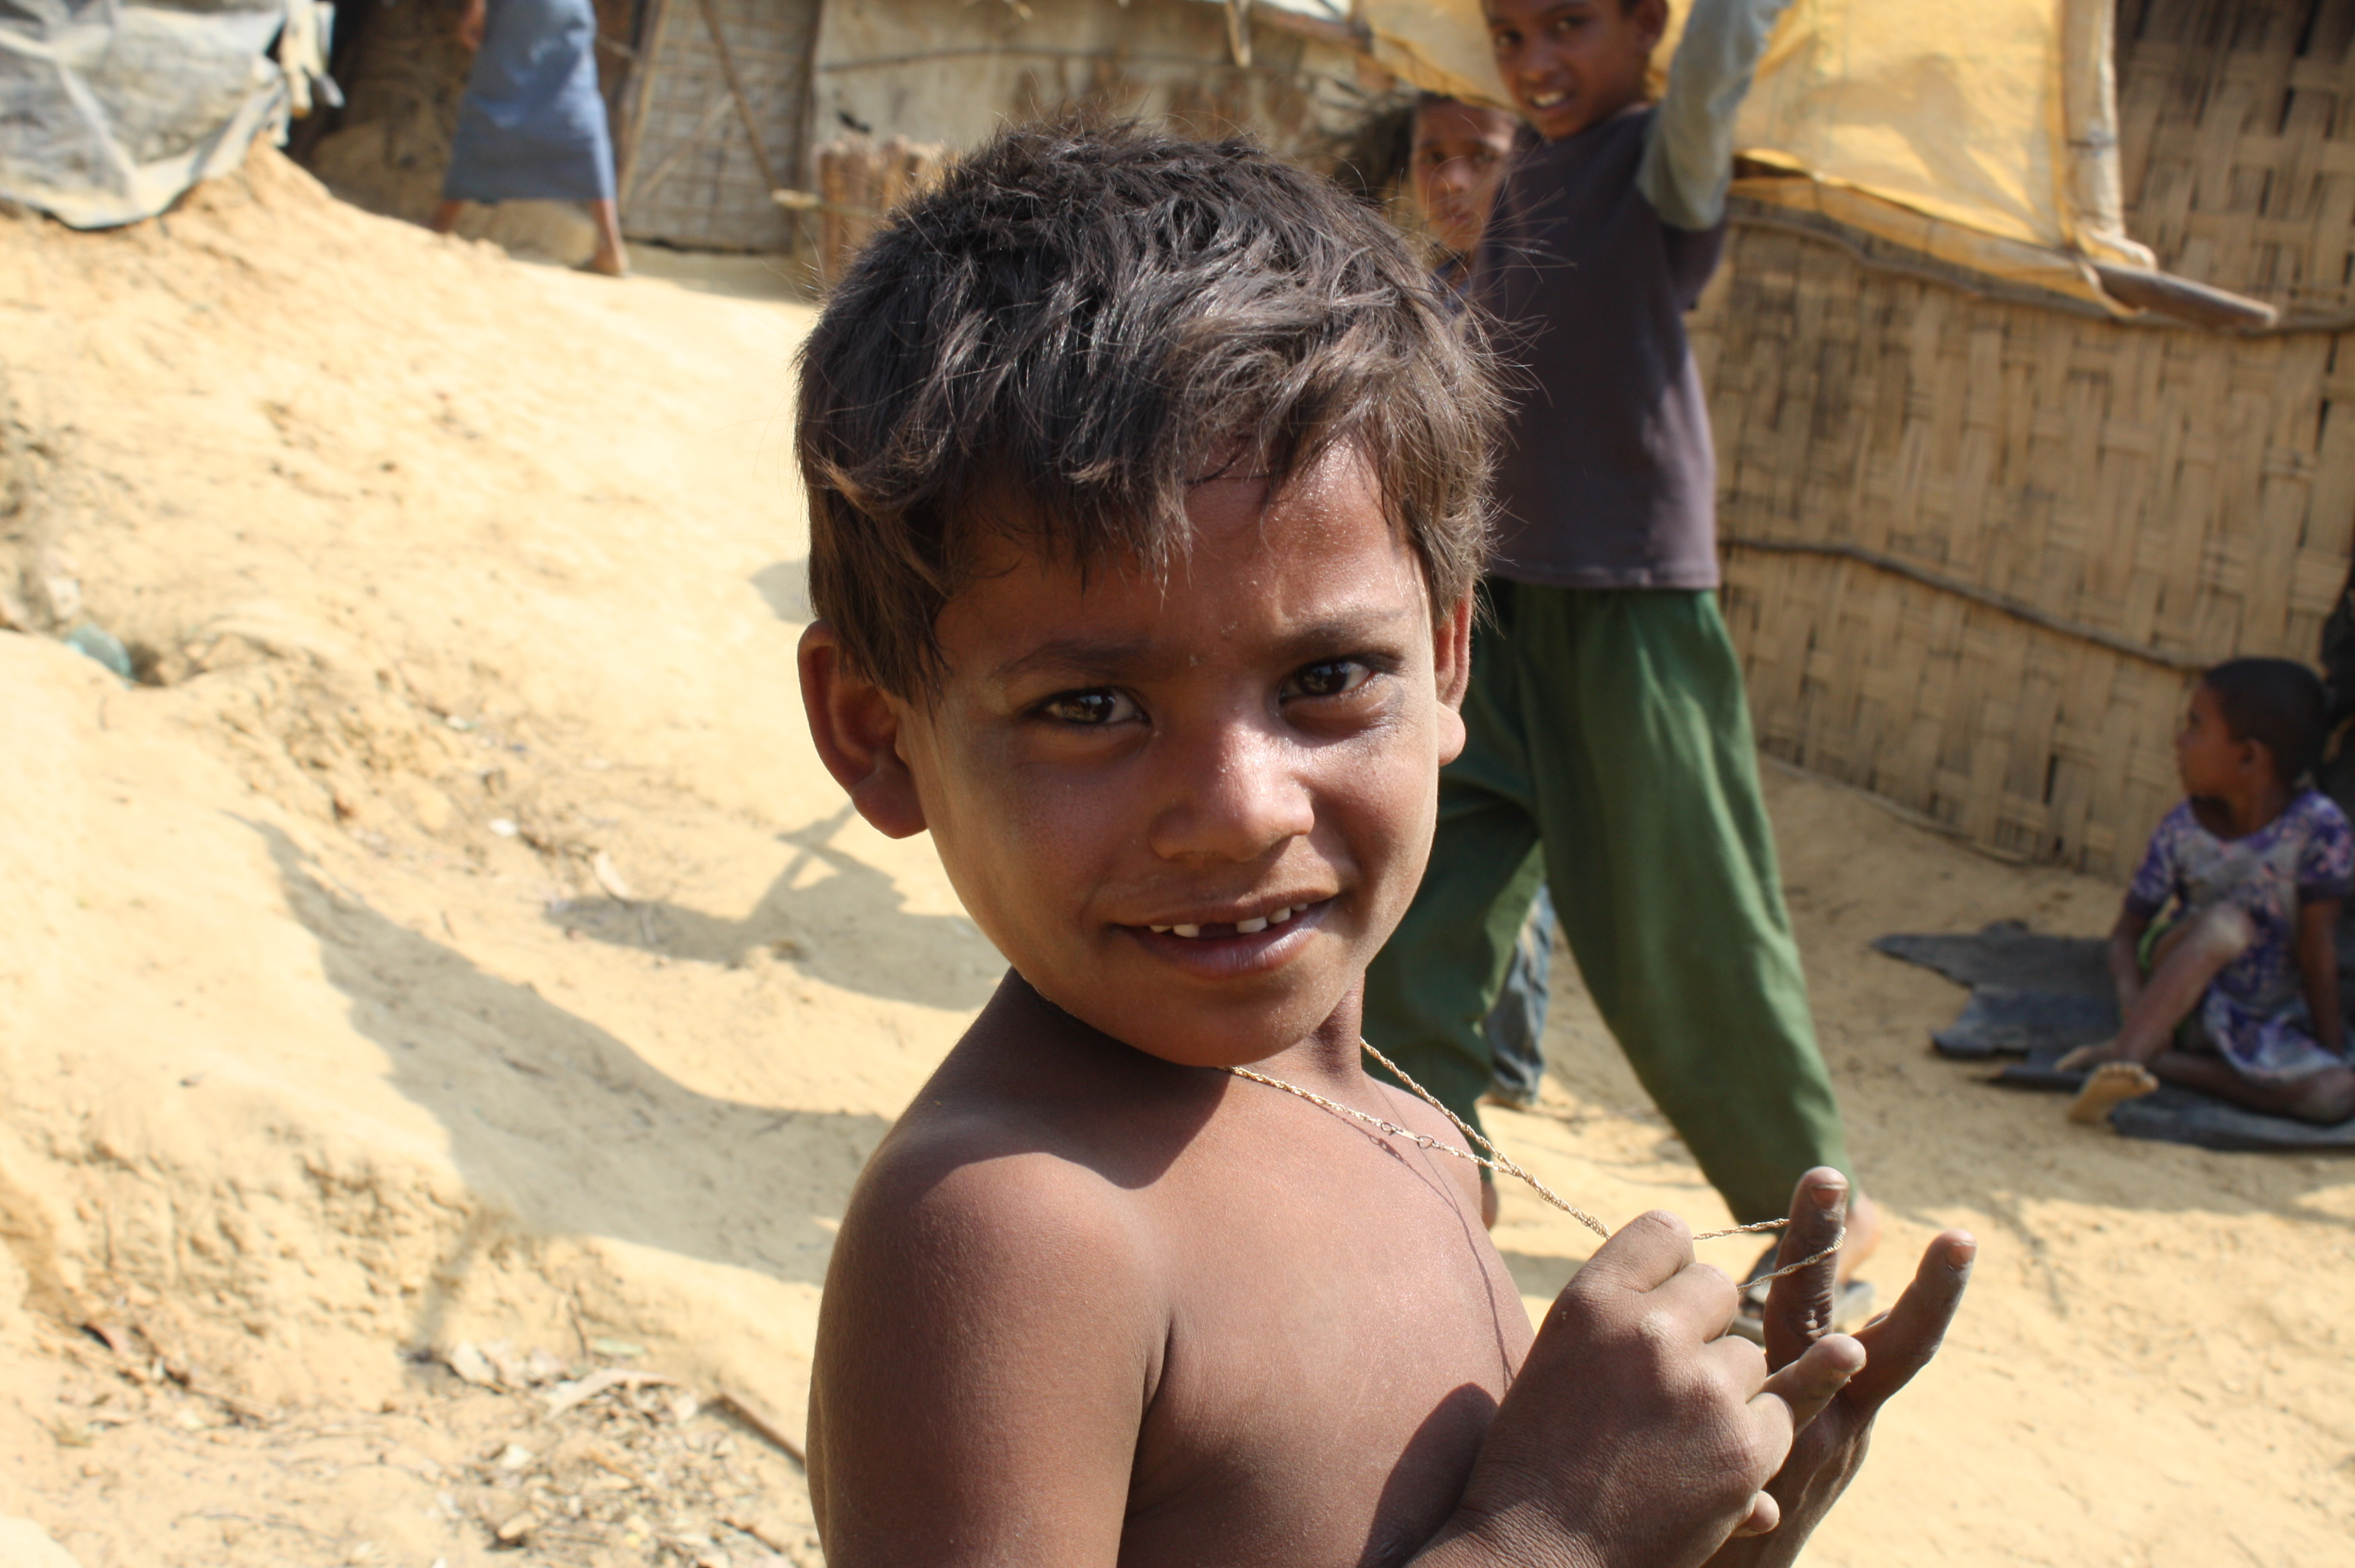 A young boy at the Kutupalong refugee makeshift site outside Cox's Bazar. Water, sanitation and food are key concerns at the site following an increasing number of undocumented refugees at the site